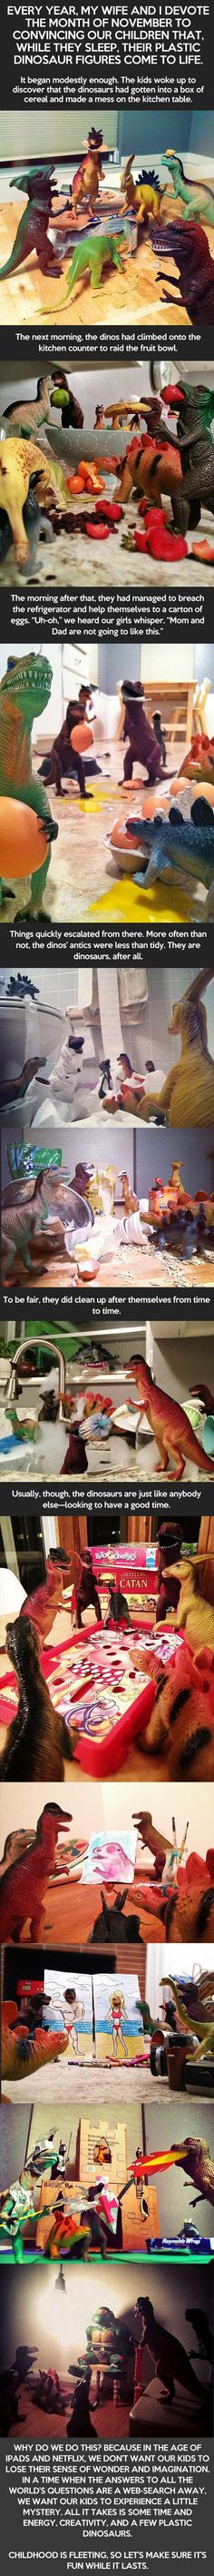 While Their Kids Sleep, These Parents Pull Off This Amazing Stunt: Plastic Dinosaur Figures Come to Life. haha that's fun I Smile, Make Me Smile, Haha, Parenting Win, Funny Parenting, Foster Parenting, Single Parenting, Parenting Quotes, Parenting Hacks